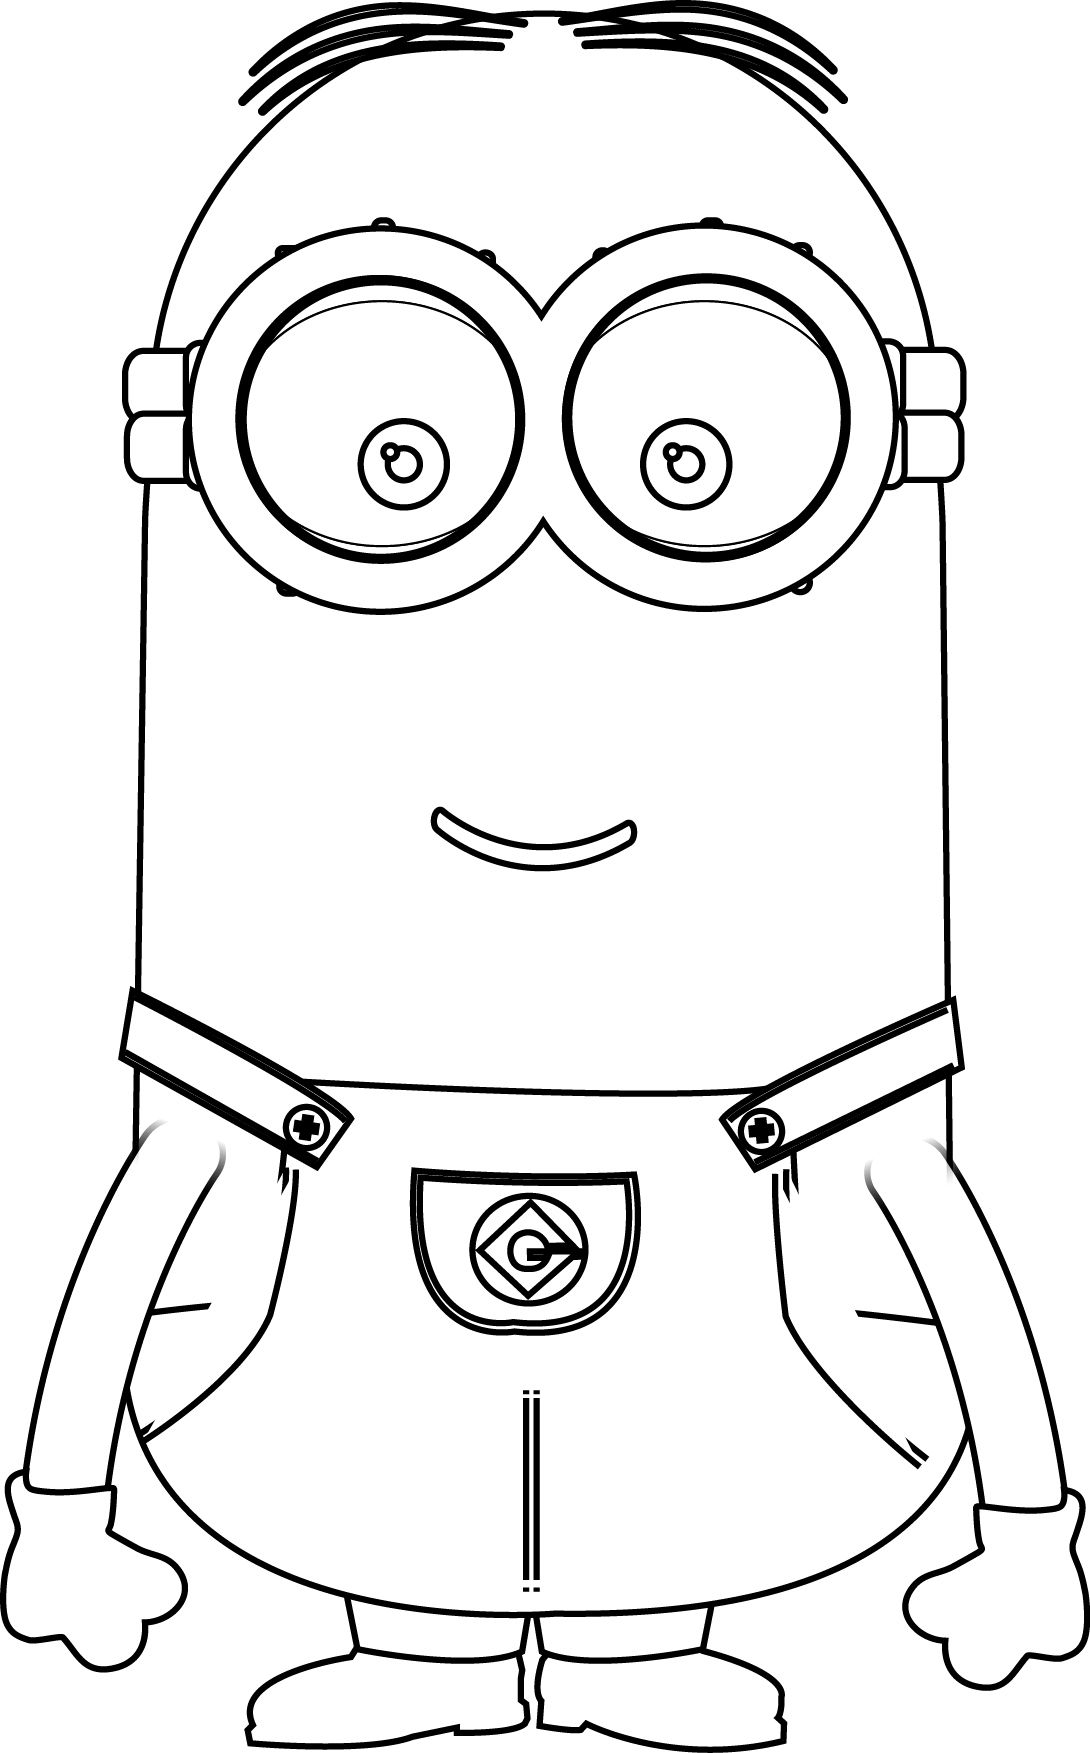 minion kevin coloring pages minion kevin coloring page free printable coloring pages kevin minion coloring pages